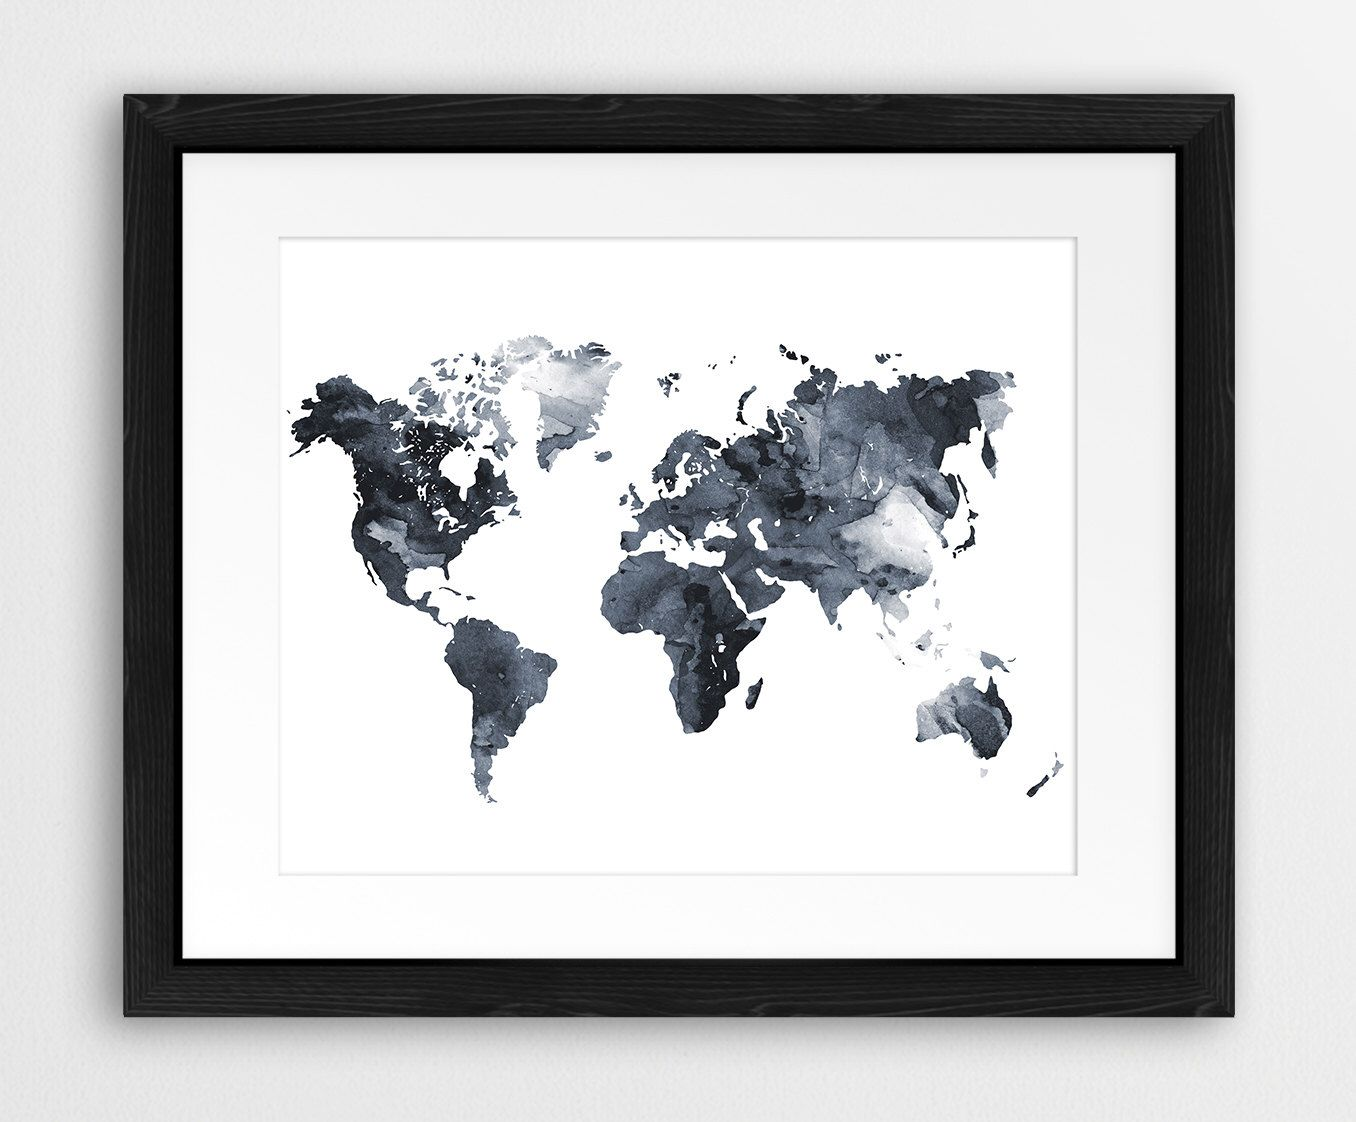 World map watercolor print world map poster watercolor grey black world map watercolor print world map poster watercolor grey black and white modern wall art home office decor travel art printable art gumiabroncs Gallery